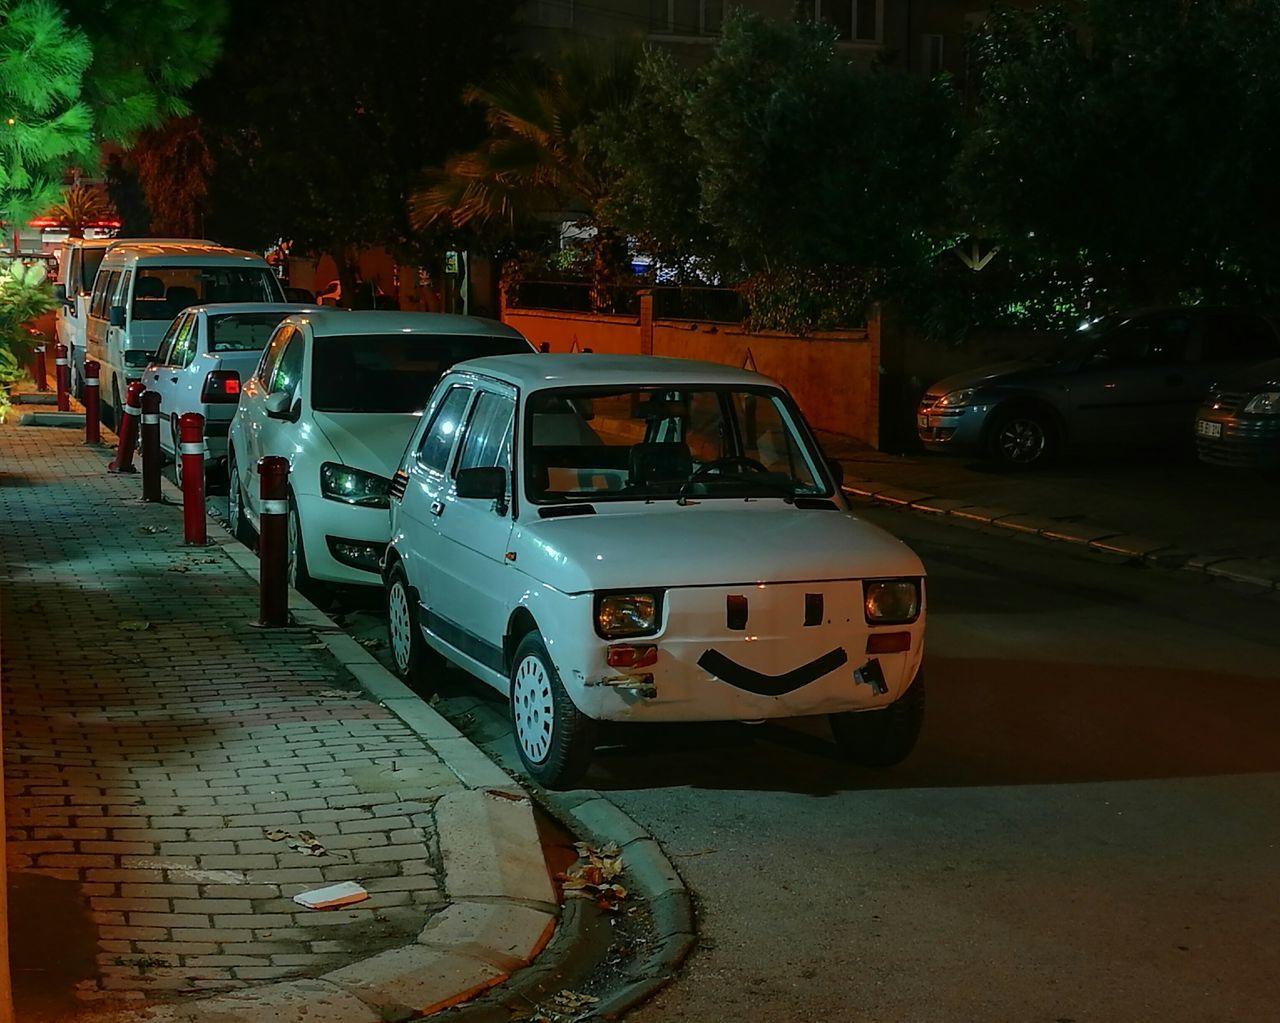 Car Transportation Night Stationary Land Vehicle Outdoors No People Police Car Huawei Huawei P9 Leica Fiat Fiat Bis Simle😉 And Simle 😊😊 Simle  Road City City Street Street Light